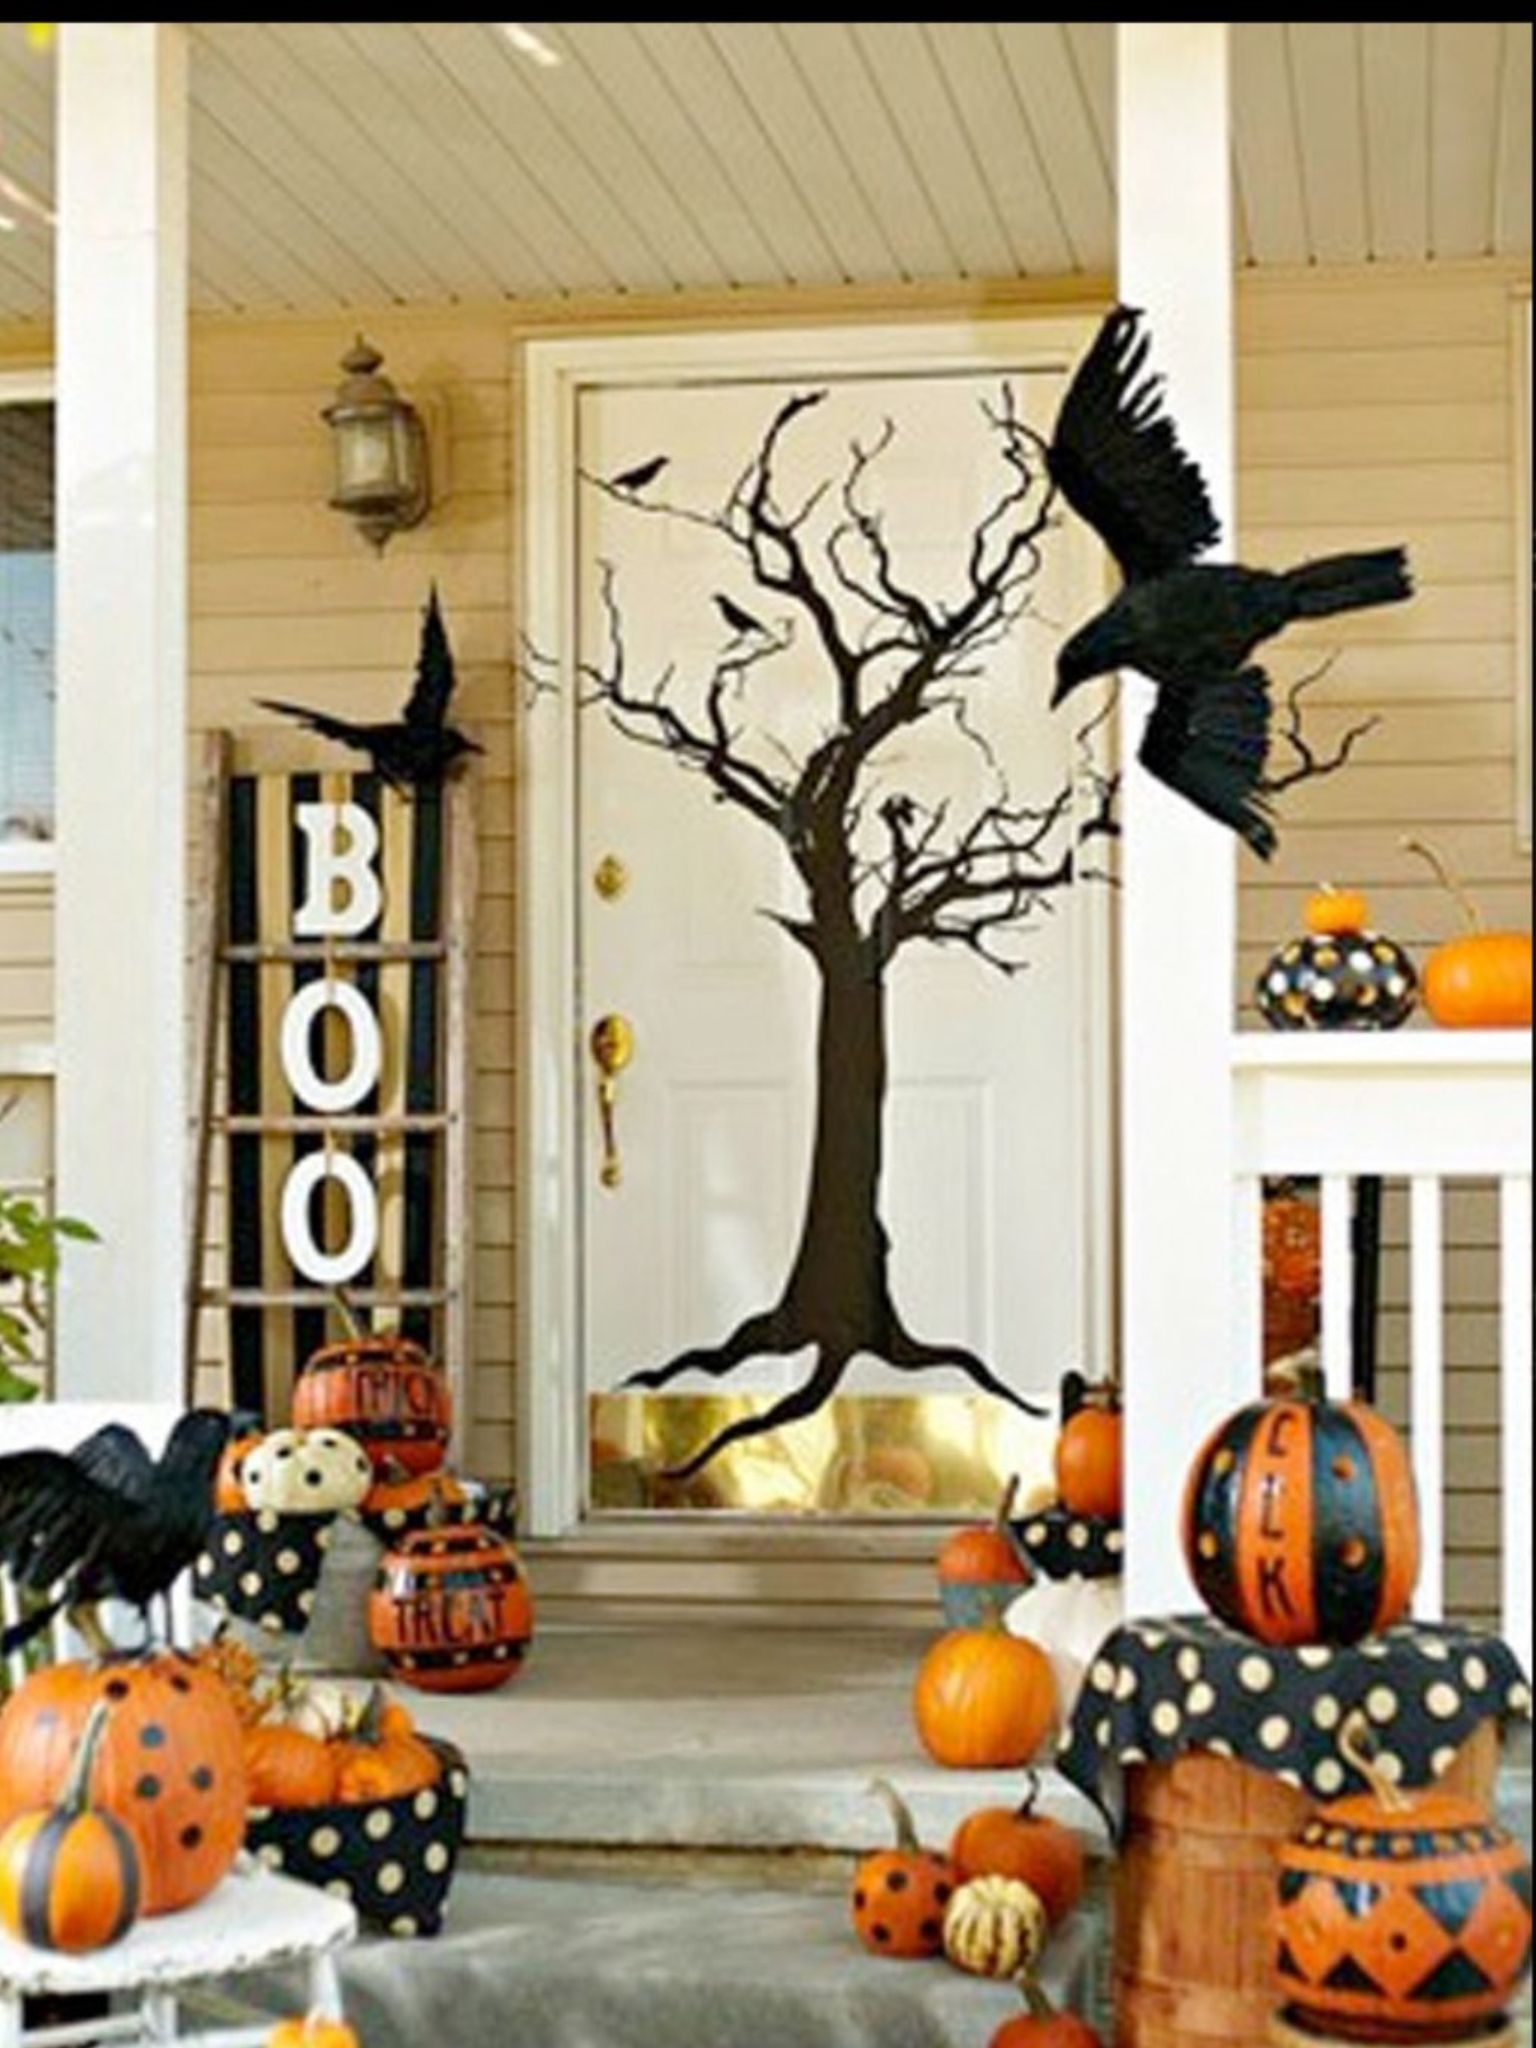 Halloween Entrance Halloween Decor Pinterest Halloween ideas - Front Door Halloween Decorations